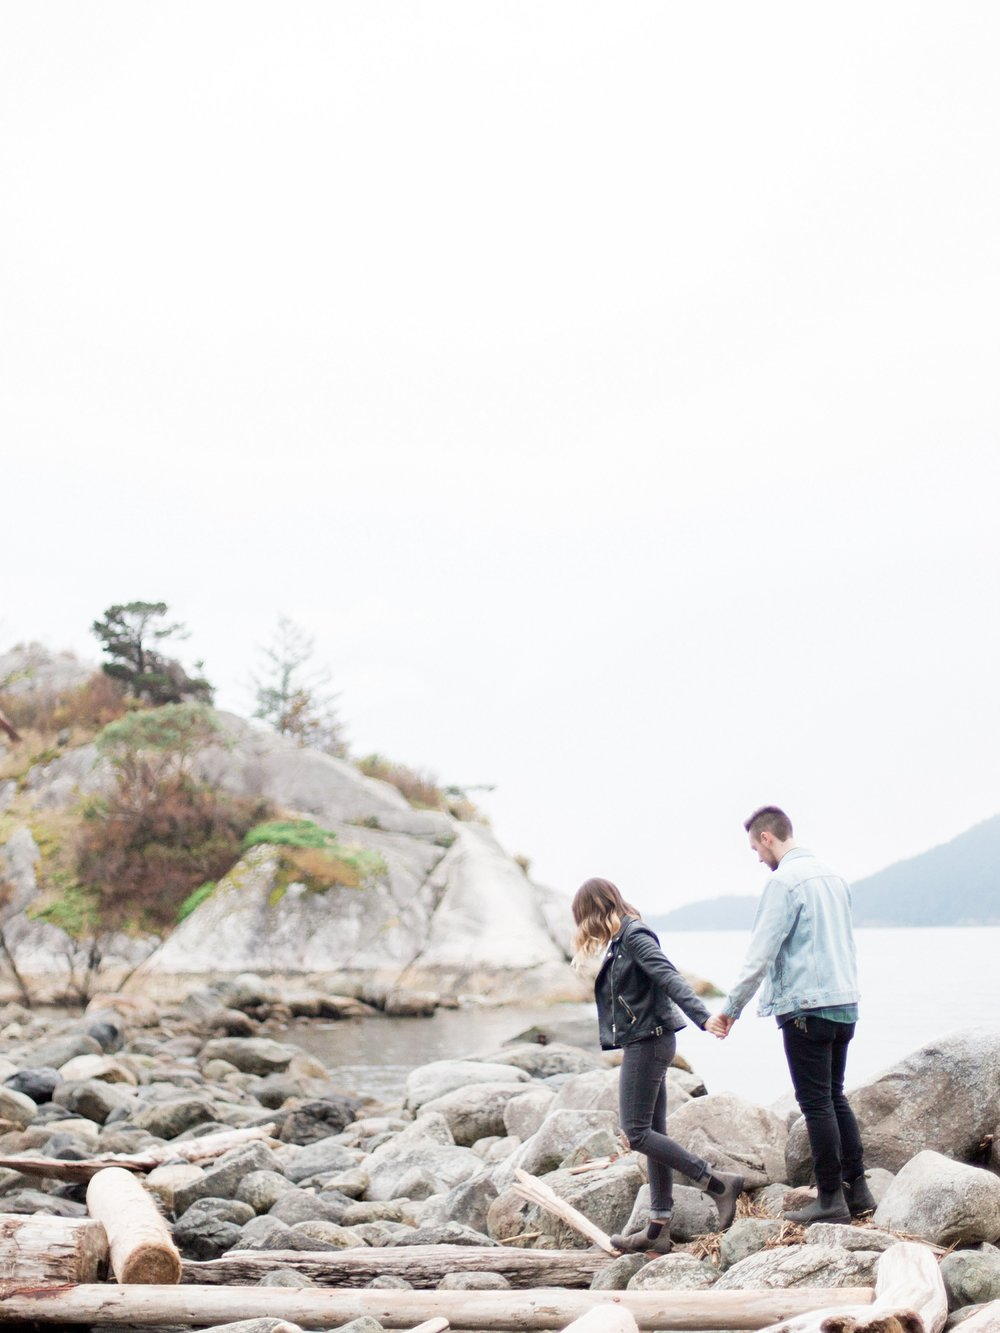 Whytecliff Park Engagement Session, Vancouver Engagement Session, Couples Session Idea, Engagement Session Ideas, Keila Marie Photography